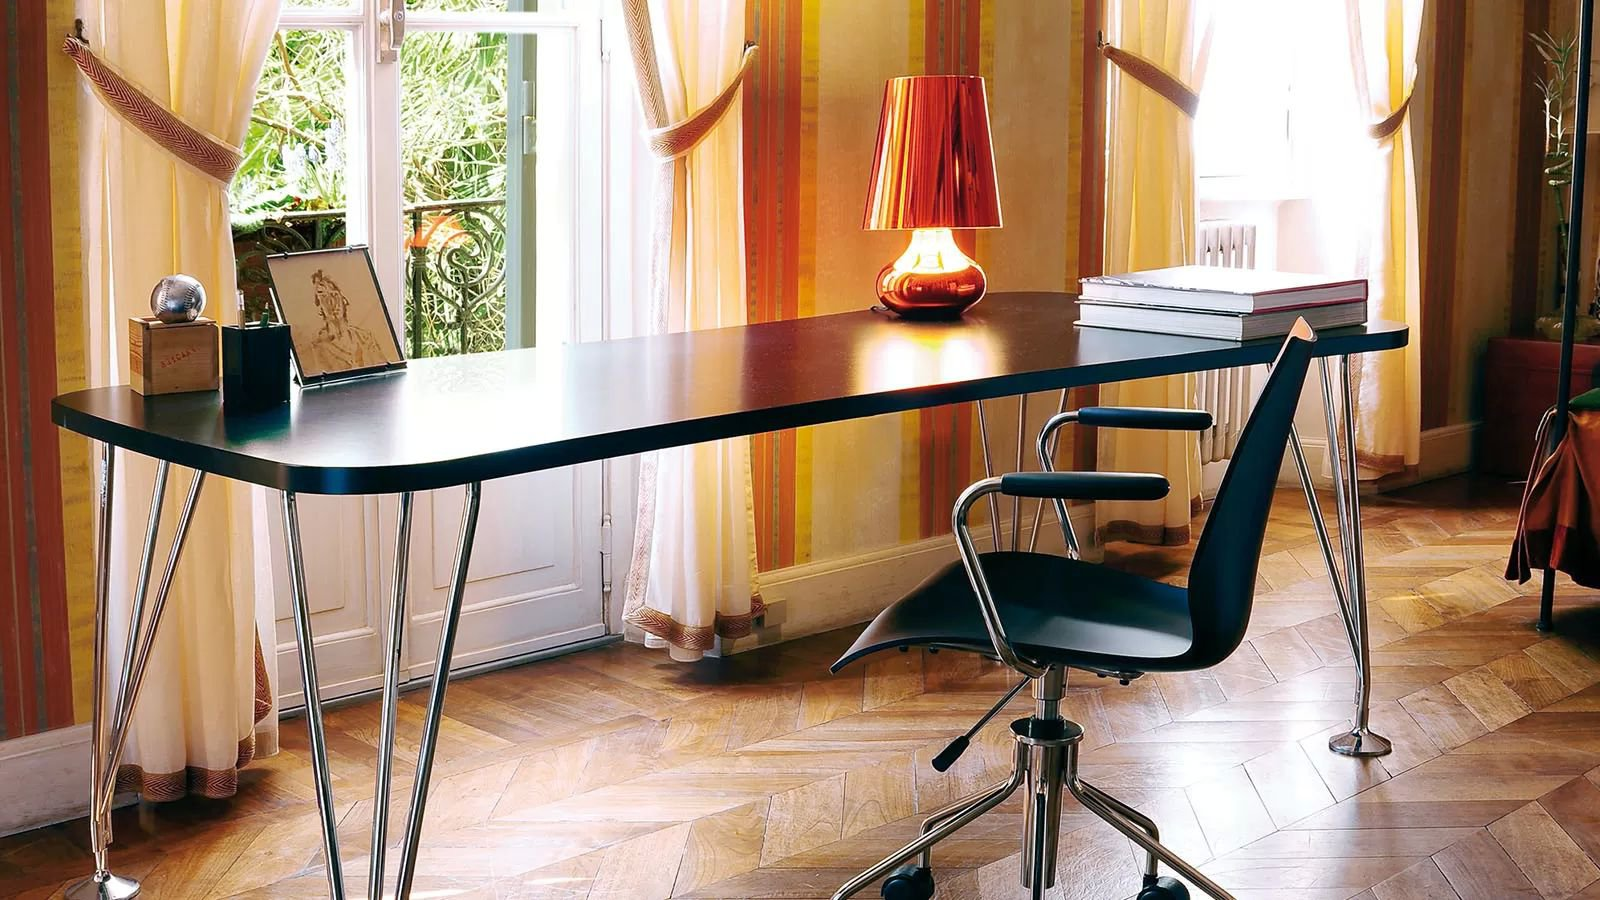 Max computer desk from Kartell, designed by Ferruccio Laviani